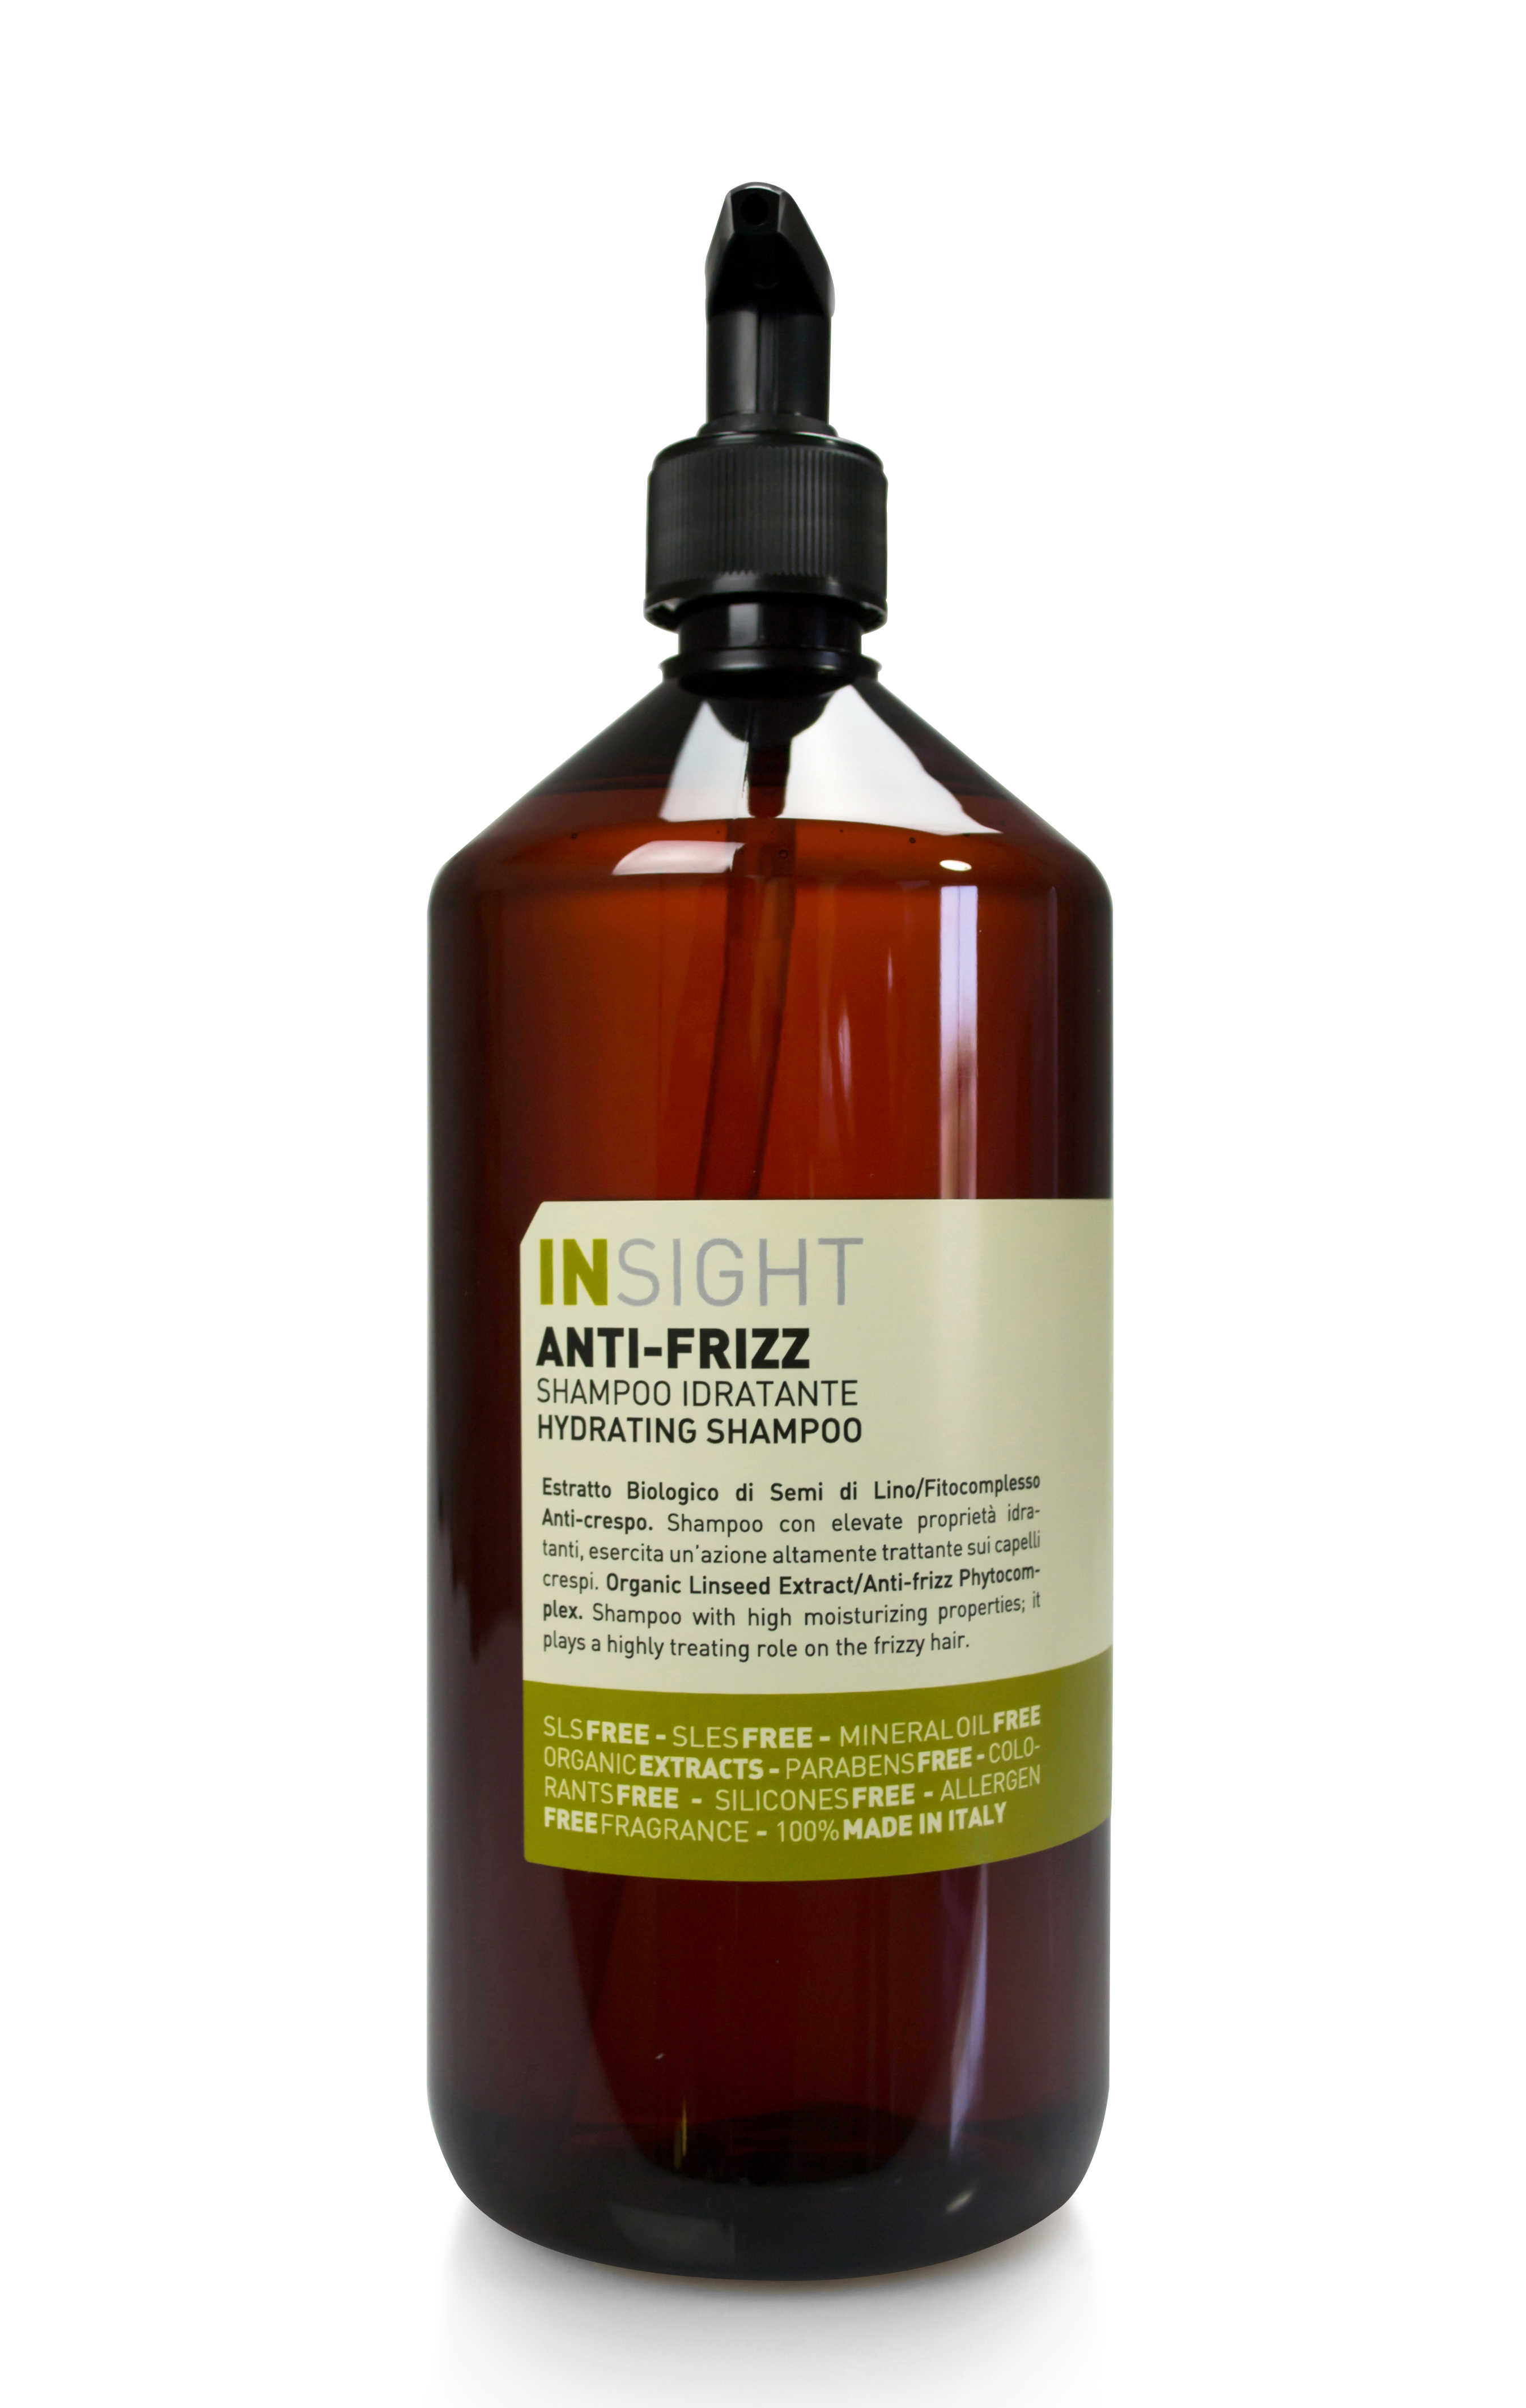 ANTI-FRIZZ HYDRATING SHAMPOO